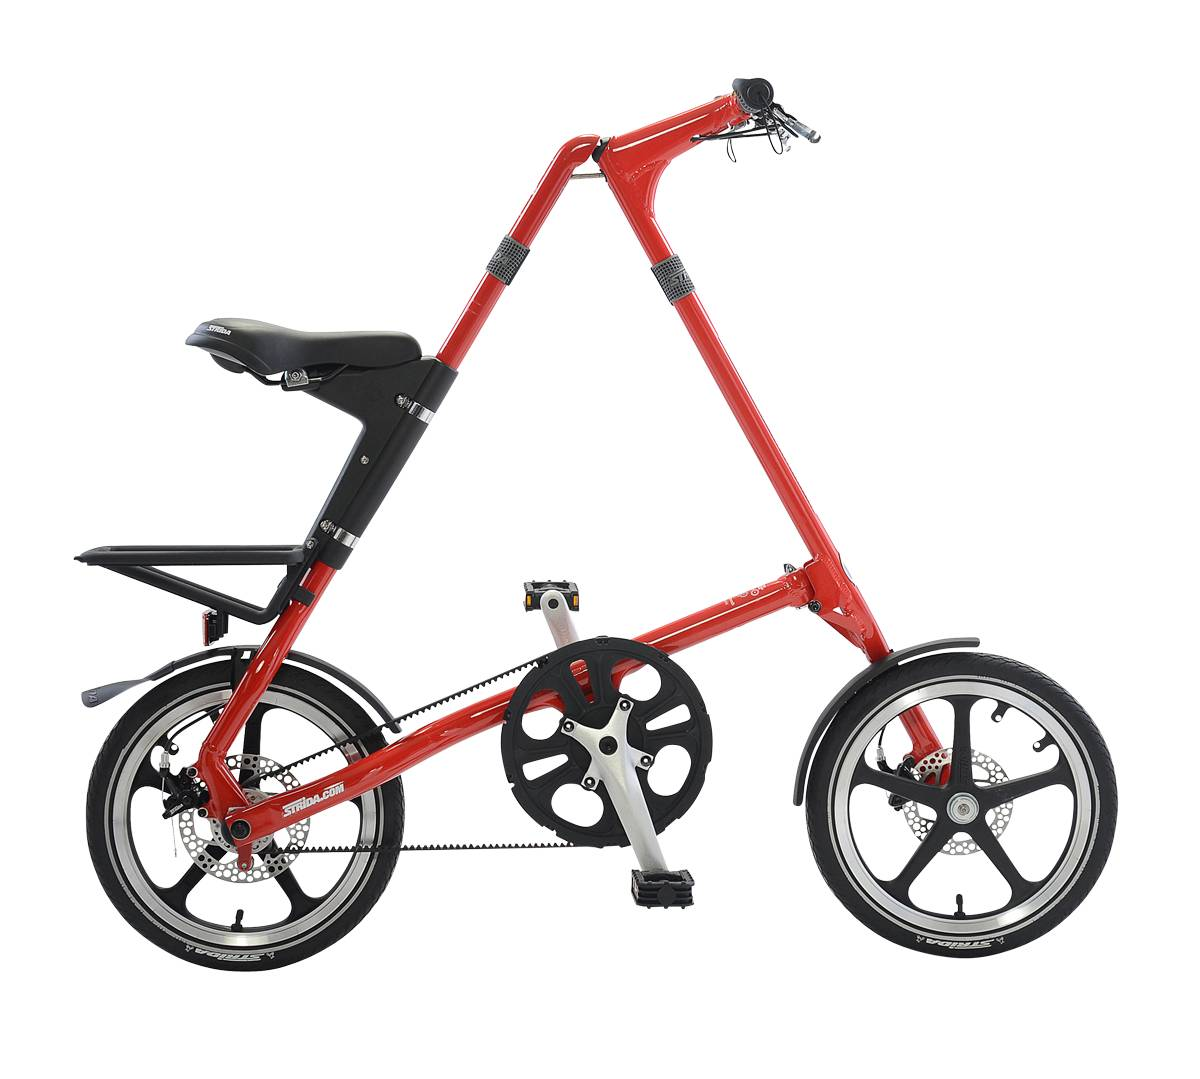 STRiDA LT Folding Bicycle, Red